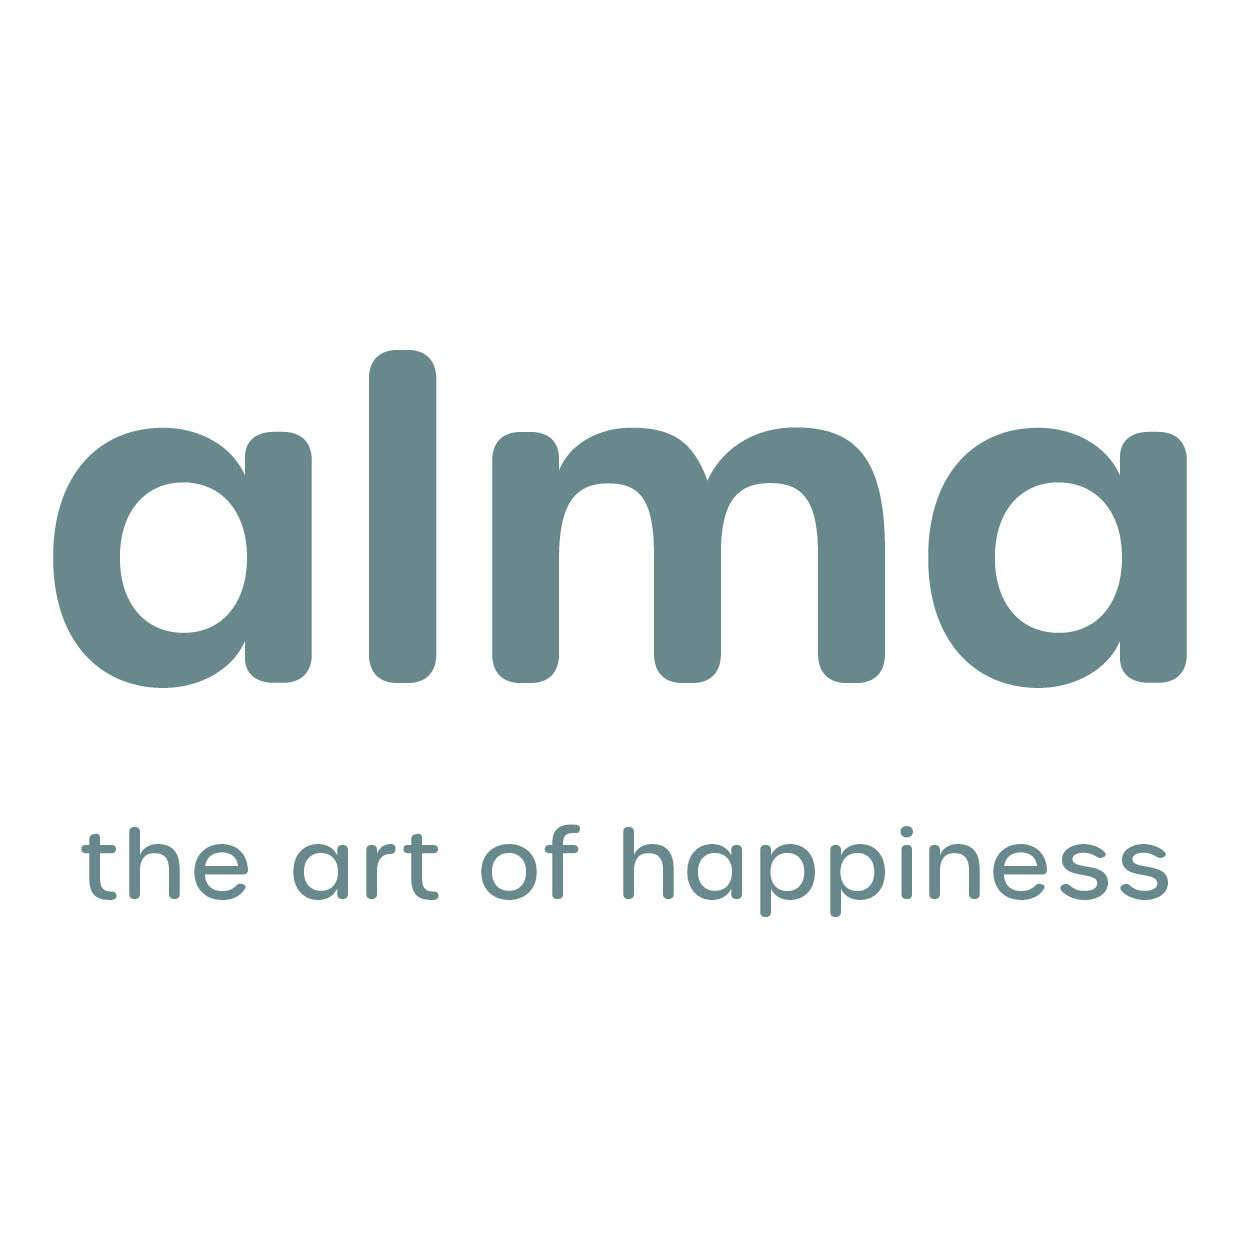 Alma - The art of happiness